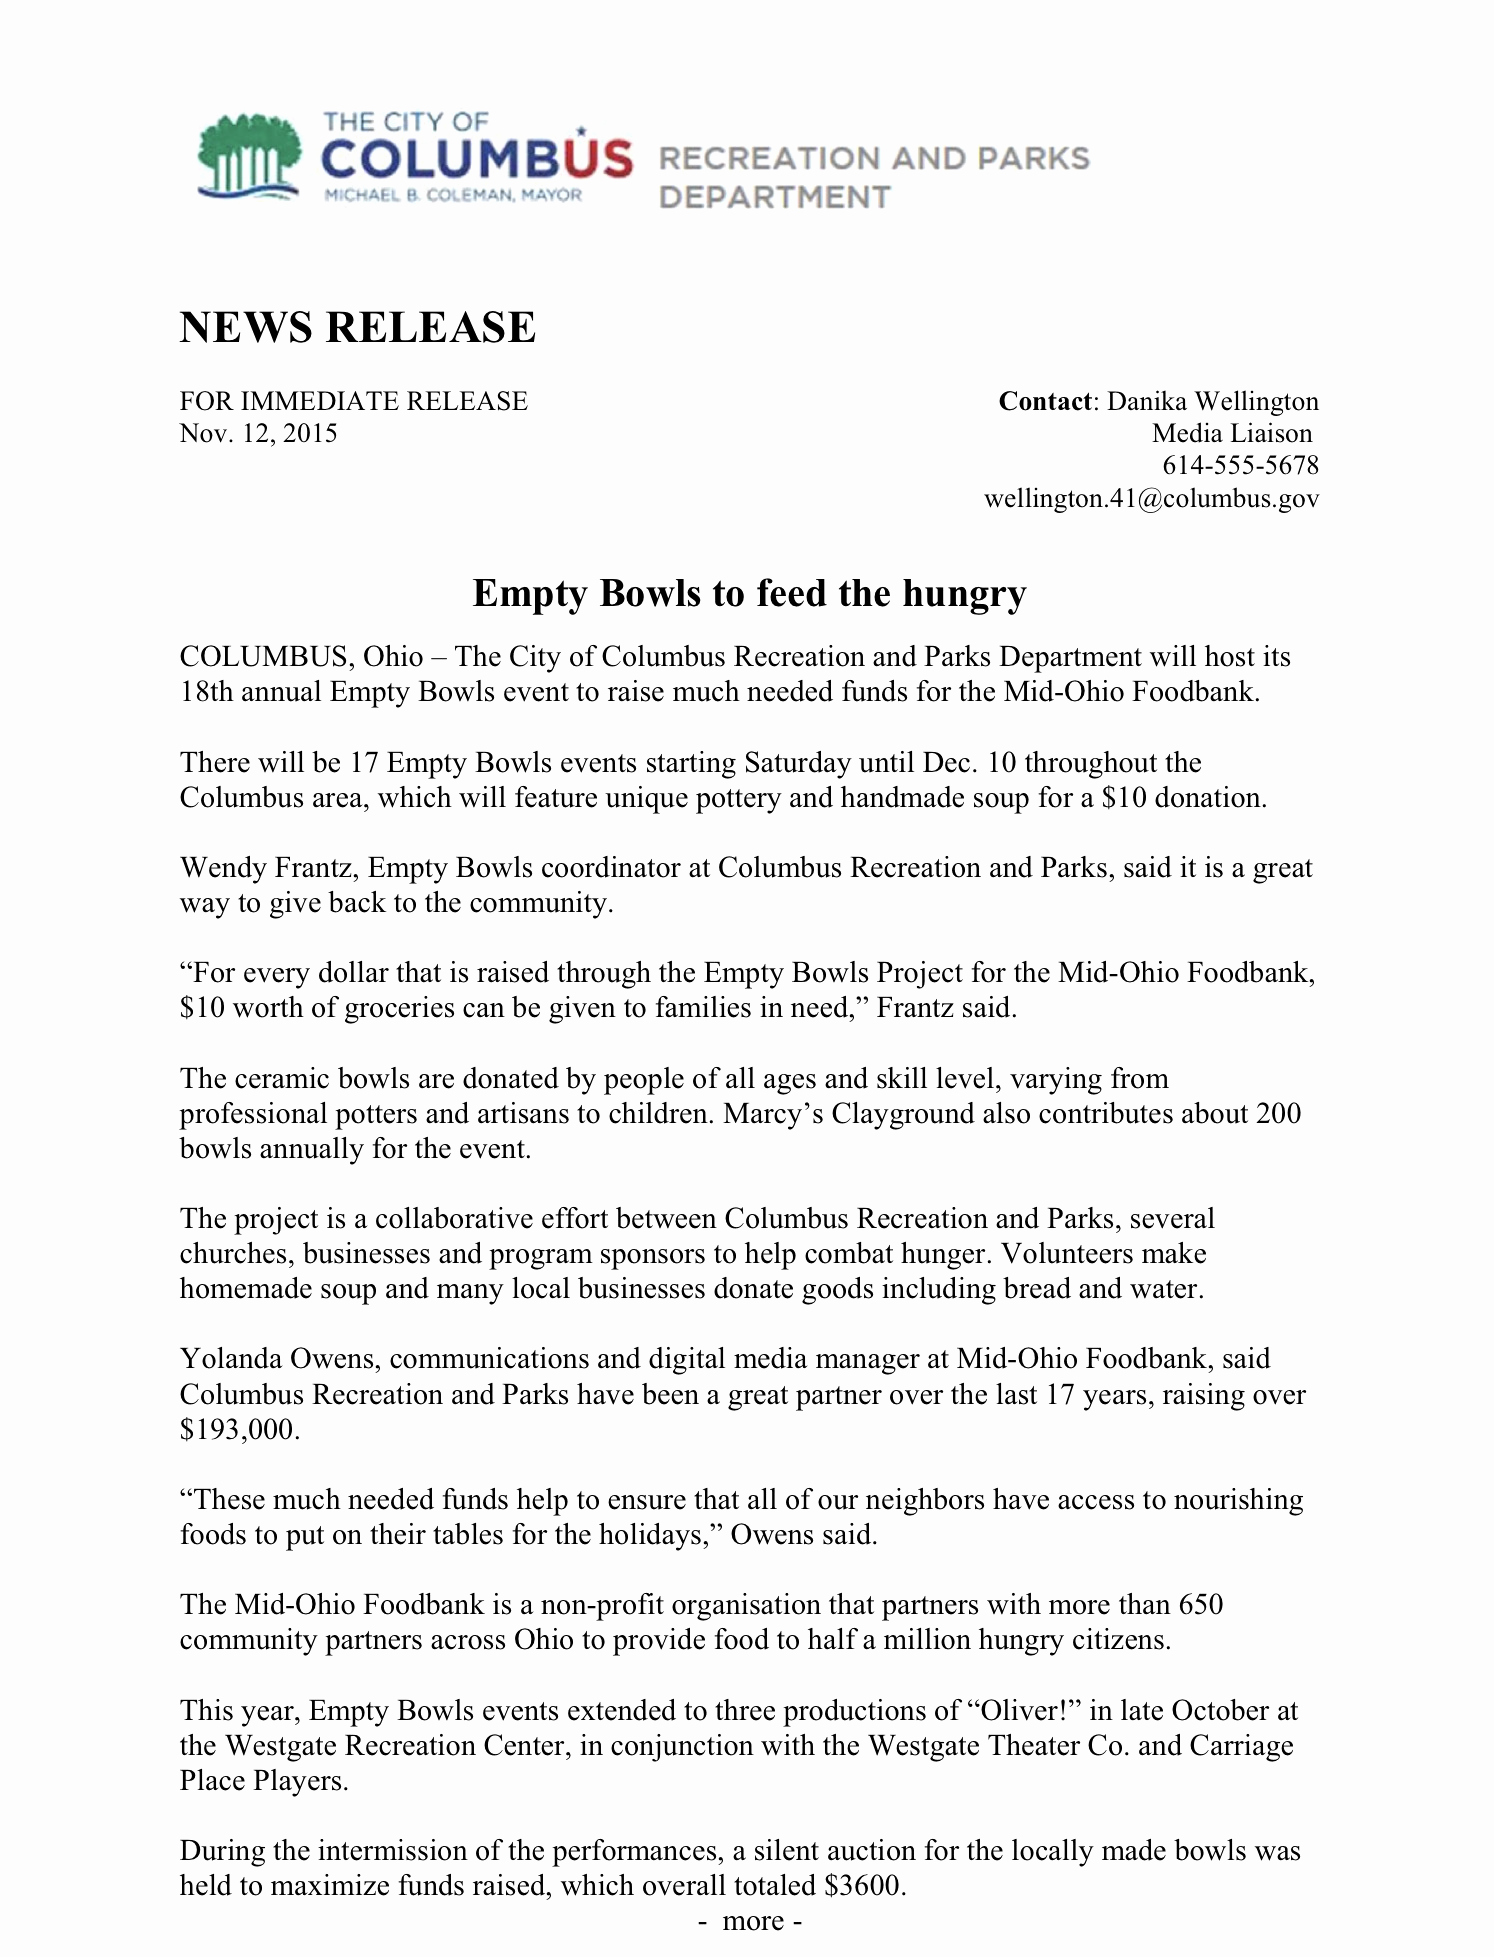 Sample Press Release Template Fresh Press Release Structure and format – Writing for Strategic